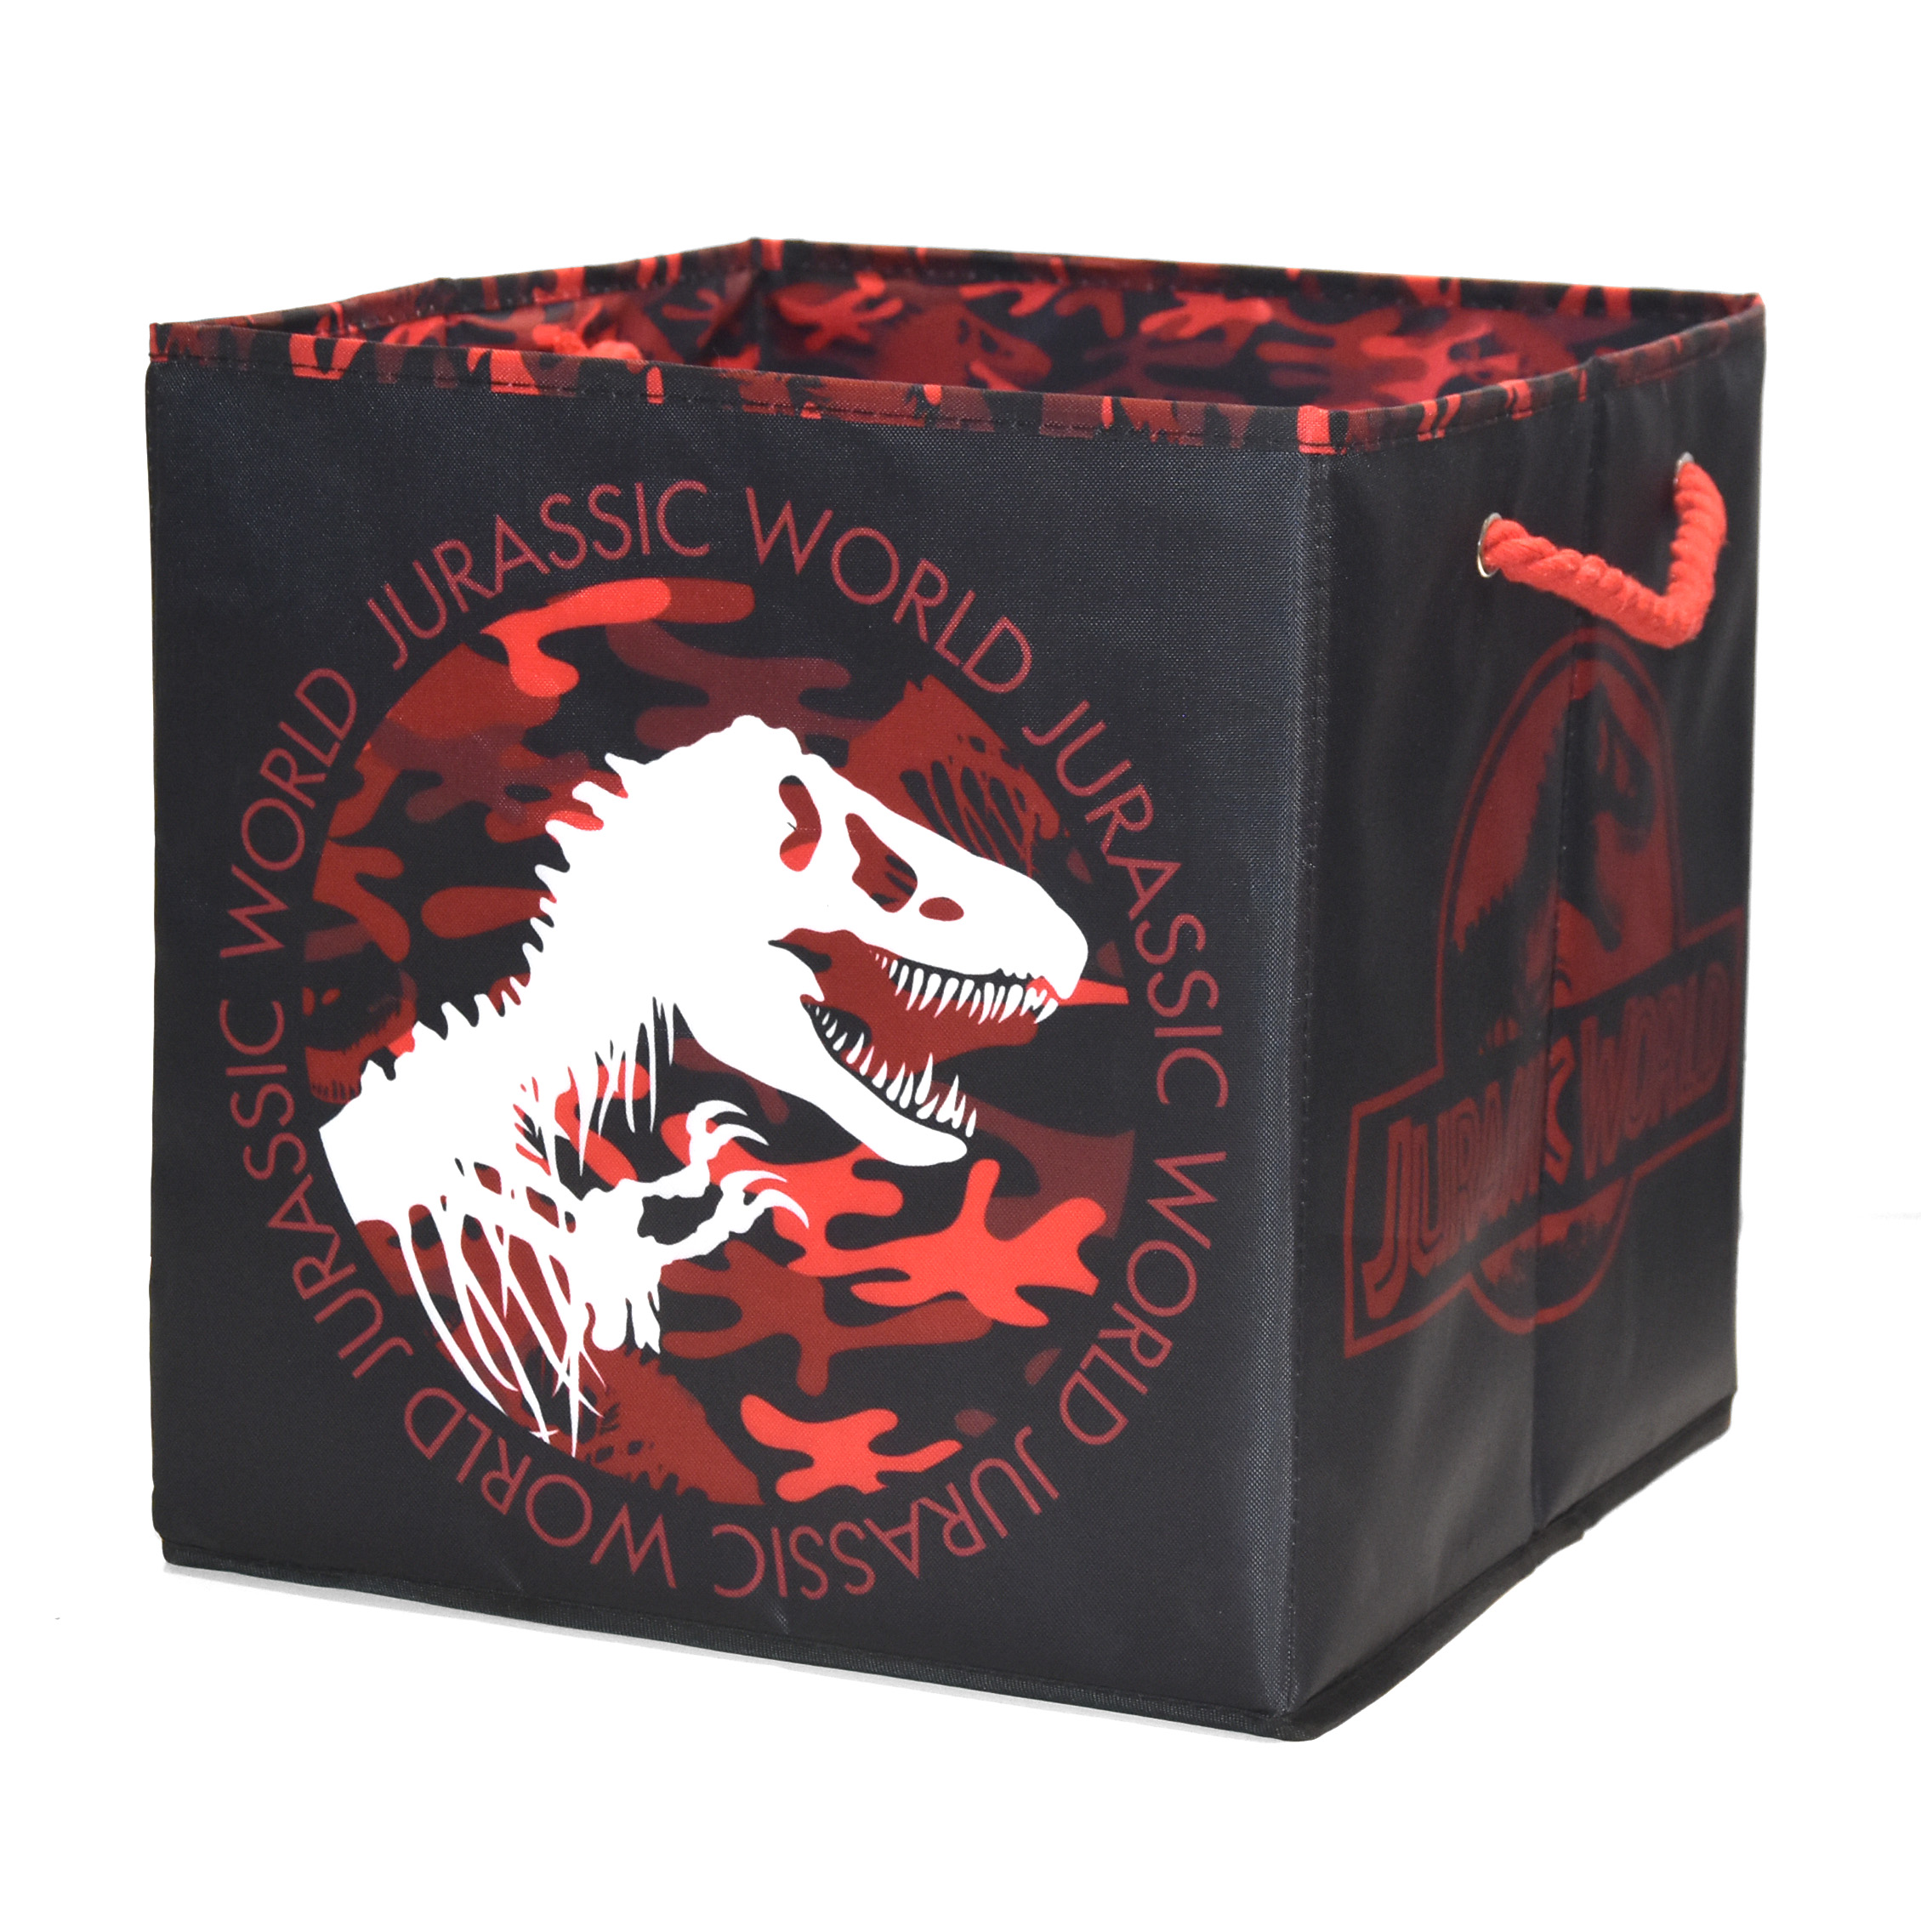 Jurassic World Collapsible Soft Storage Cube with Rope Handles